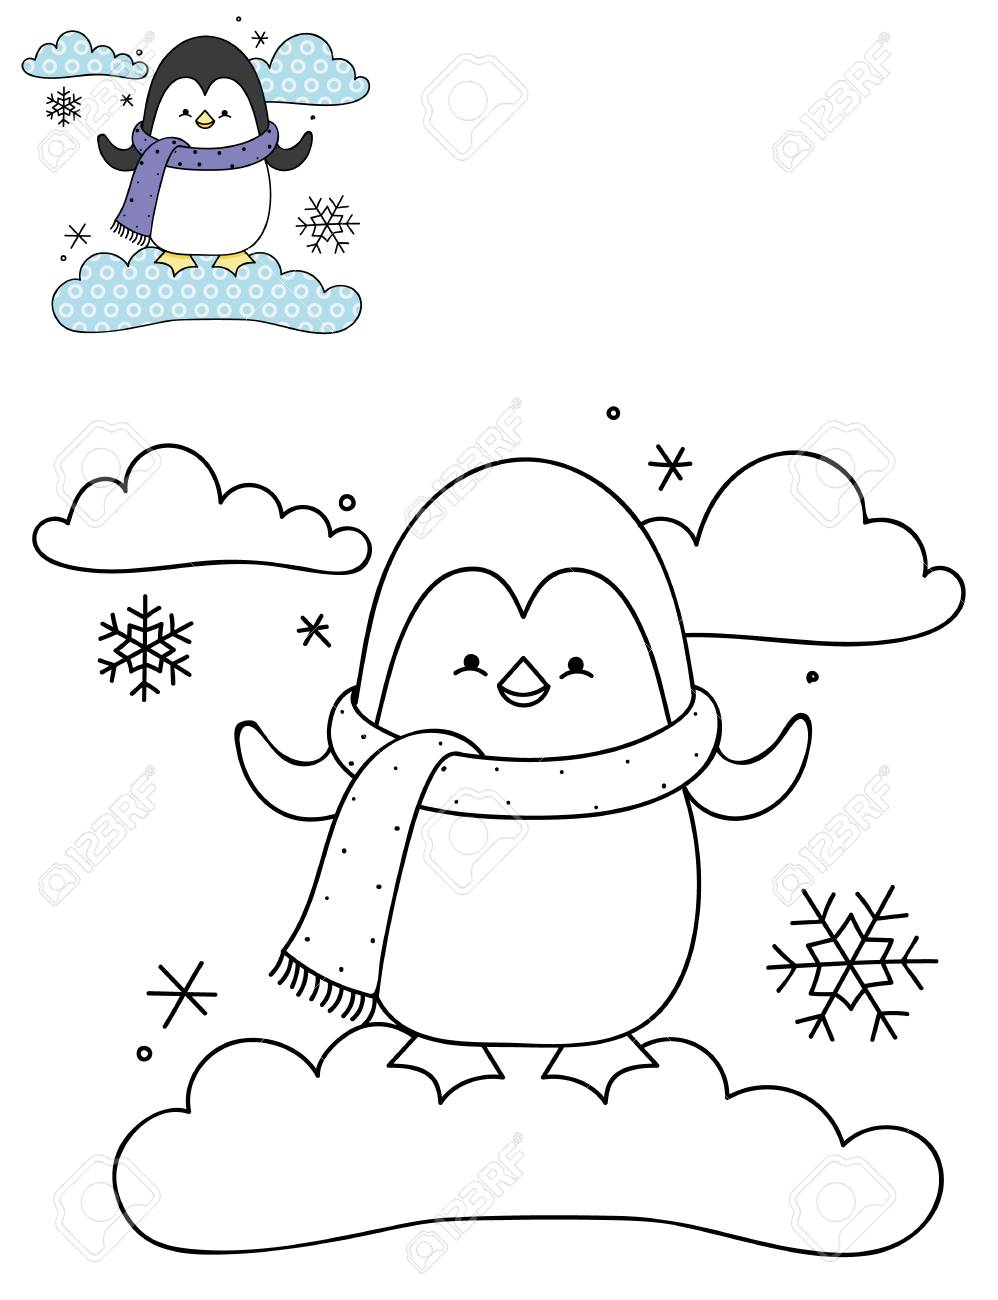 Coloring Page Outline Of Cartoon Cute Penguin On A Cloud. Hand ...